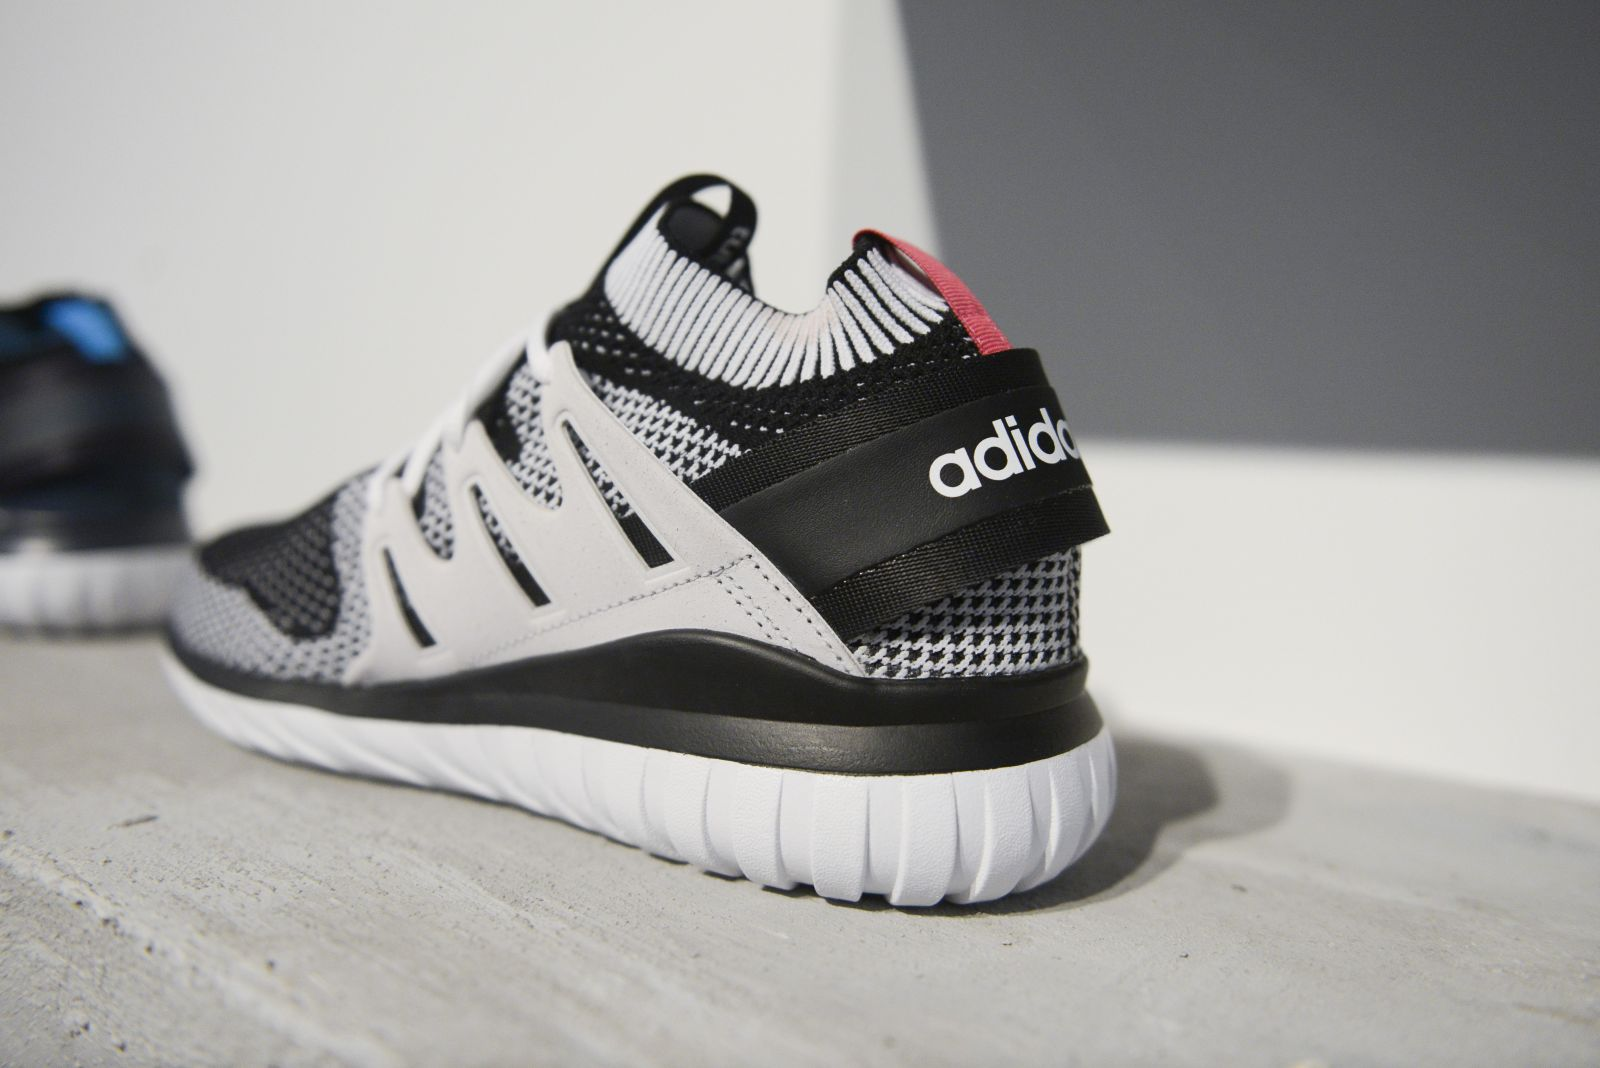 Adidas mi Tubular Radial Black adidas UK